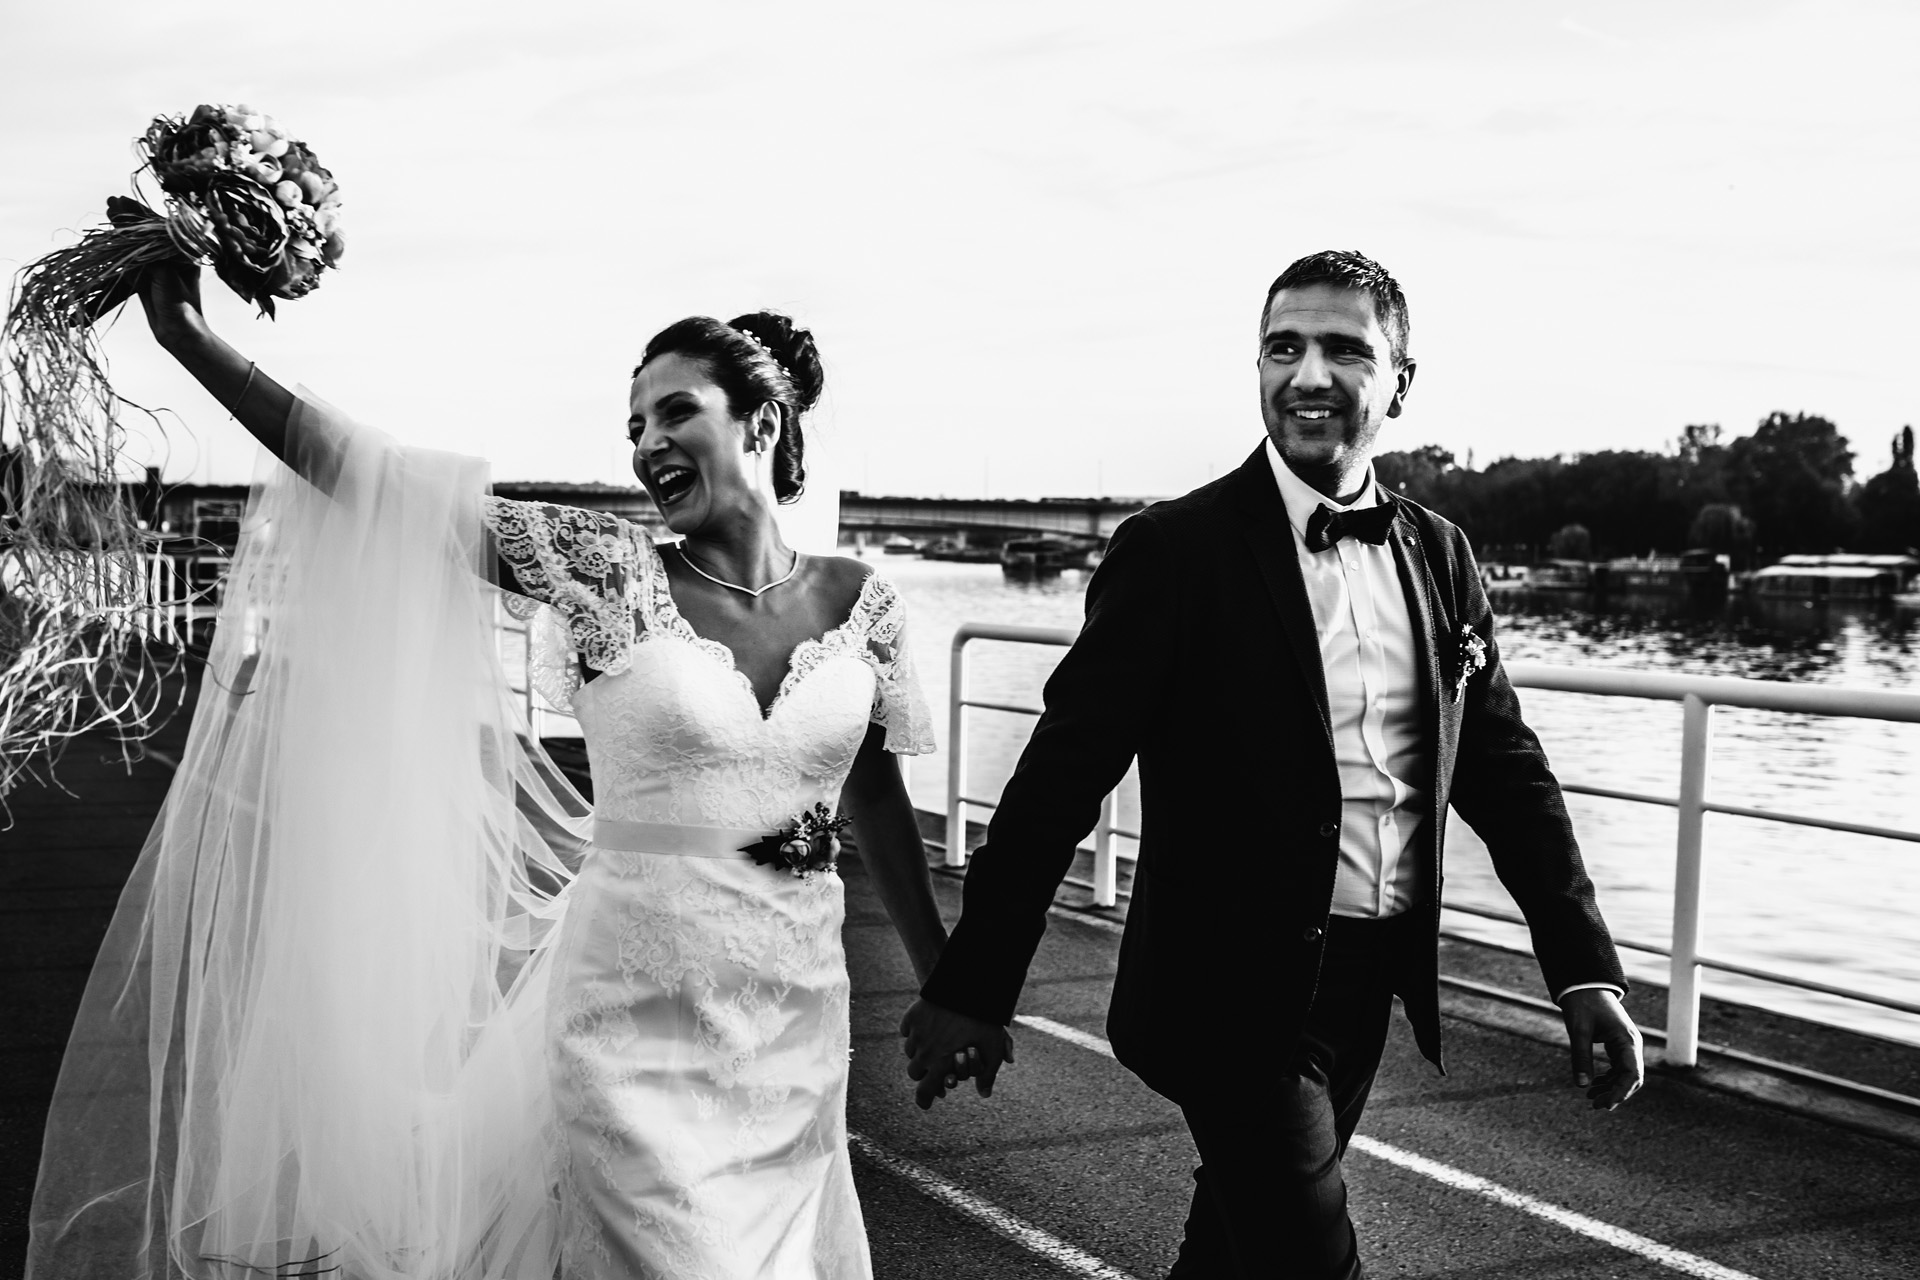 River Side, Belgrade, Serbia Wedding Couple Walking Photo | a boat party with a city view on the waters